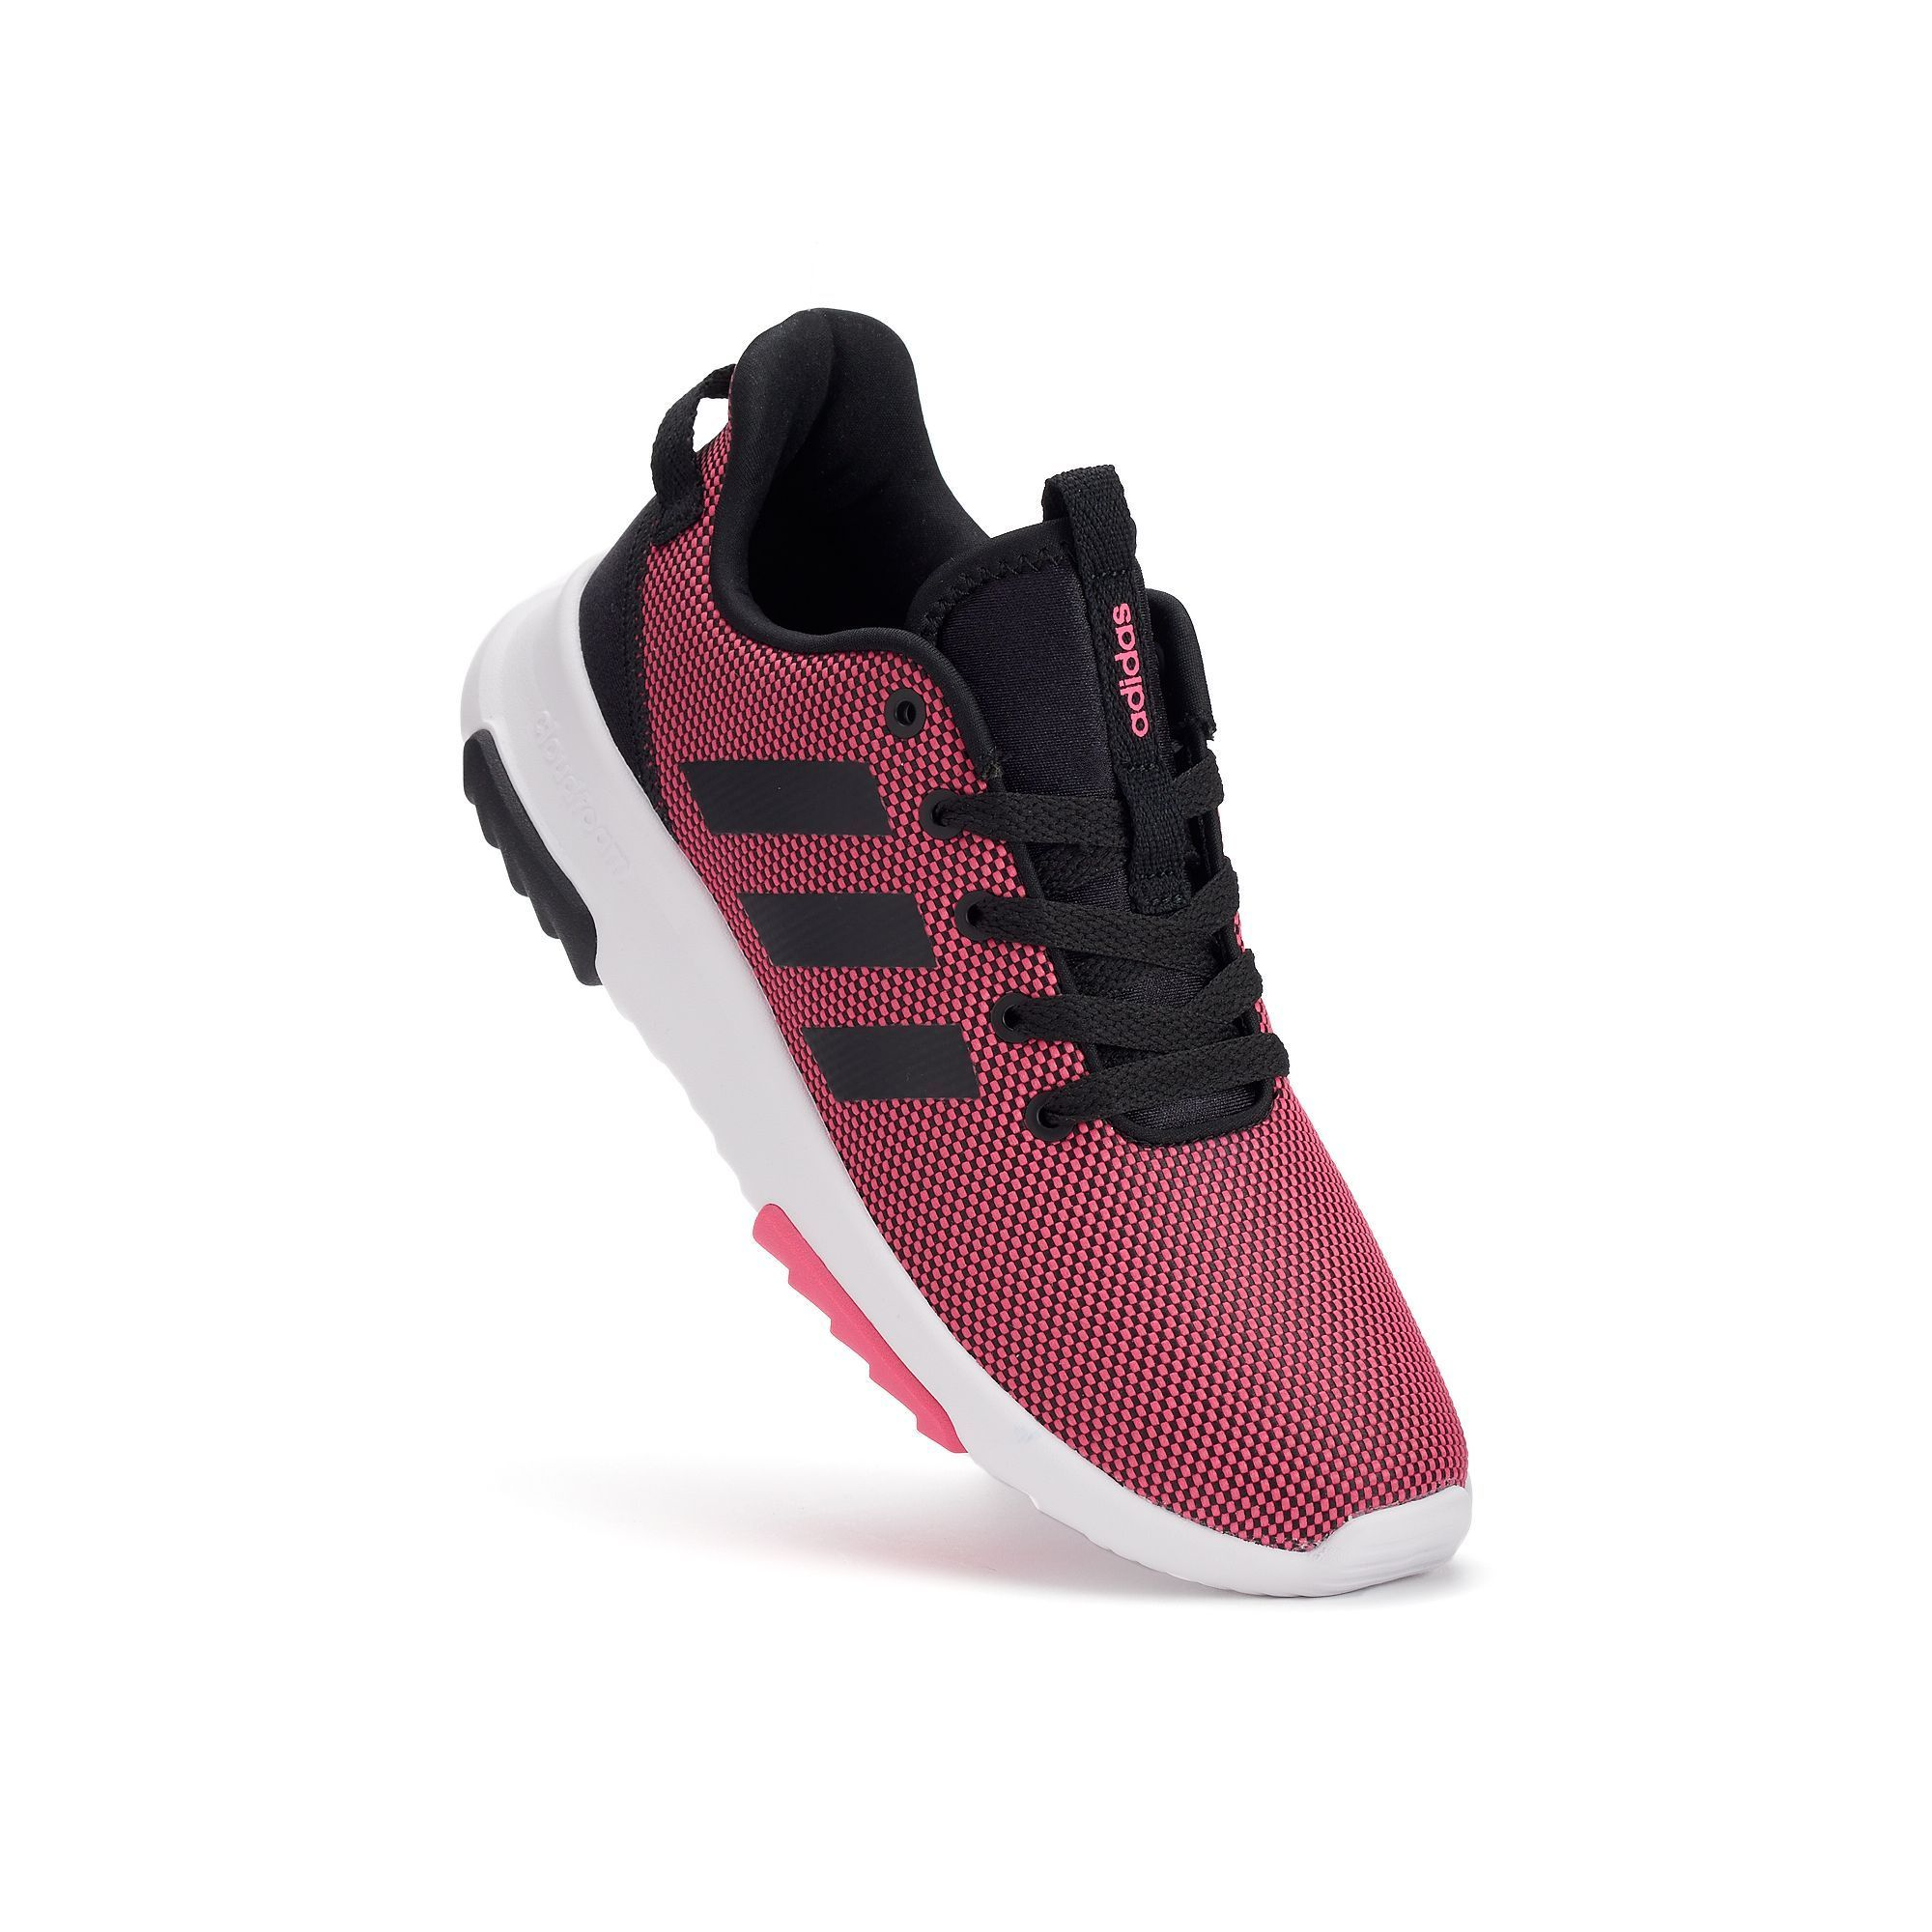 adb7f5f9f13 adidas NEO Cloudfoam Racer TR Girls' Sneakers | Products | Adidas ...